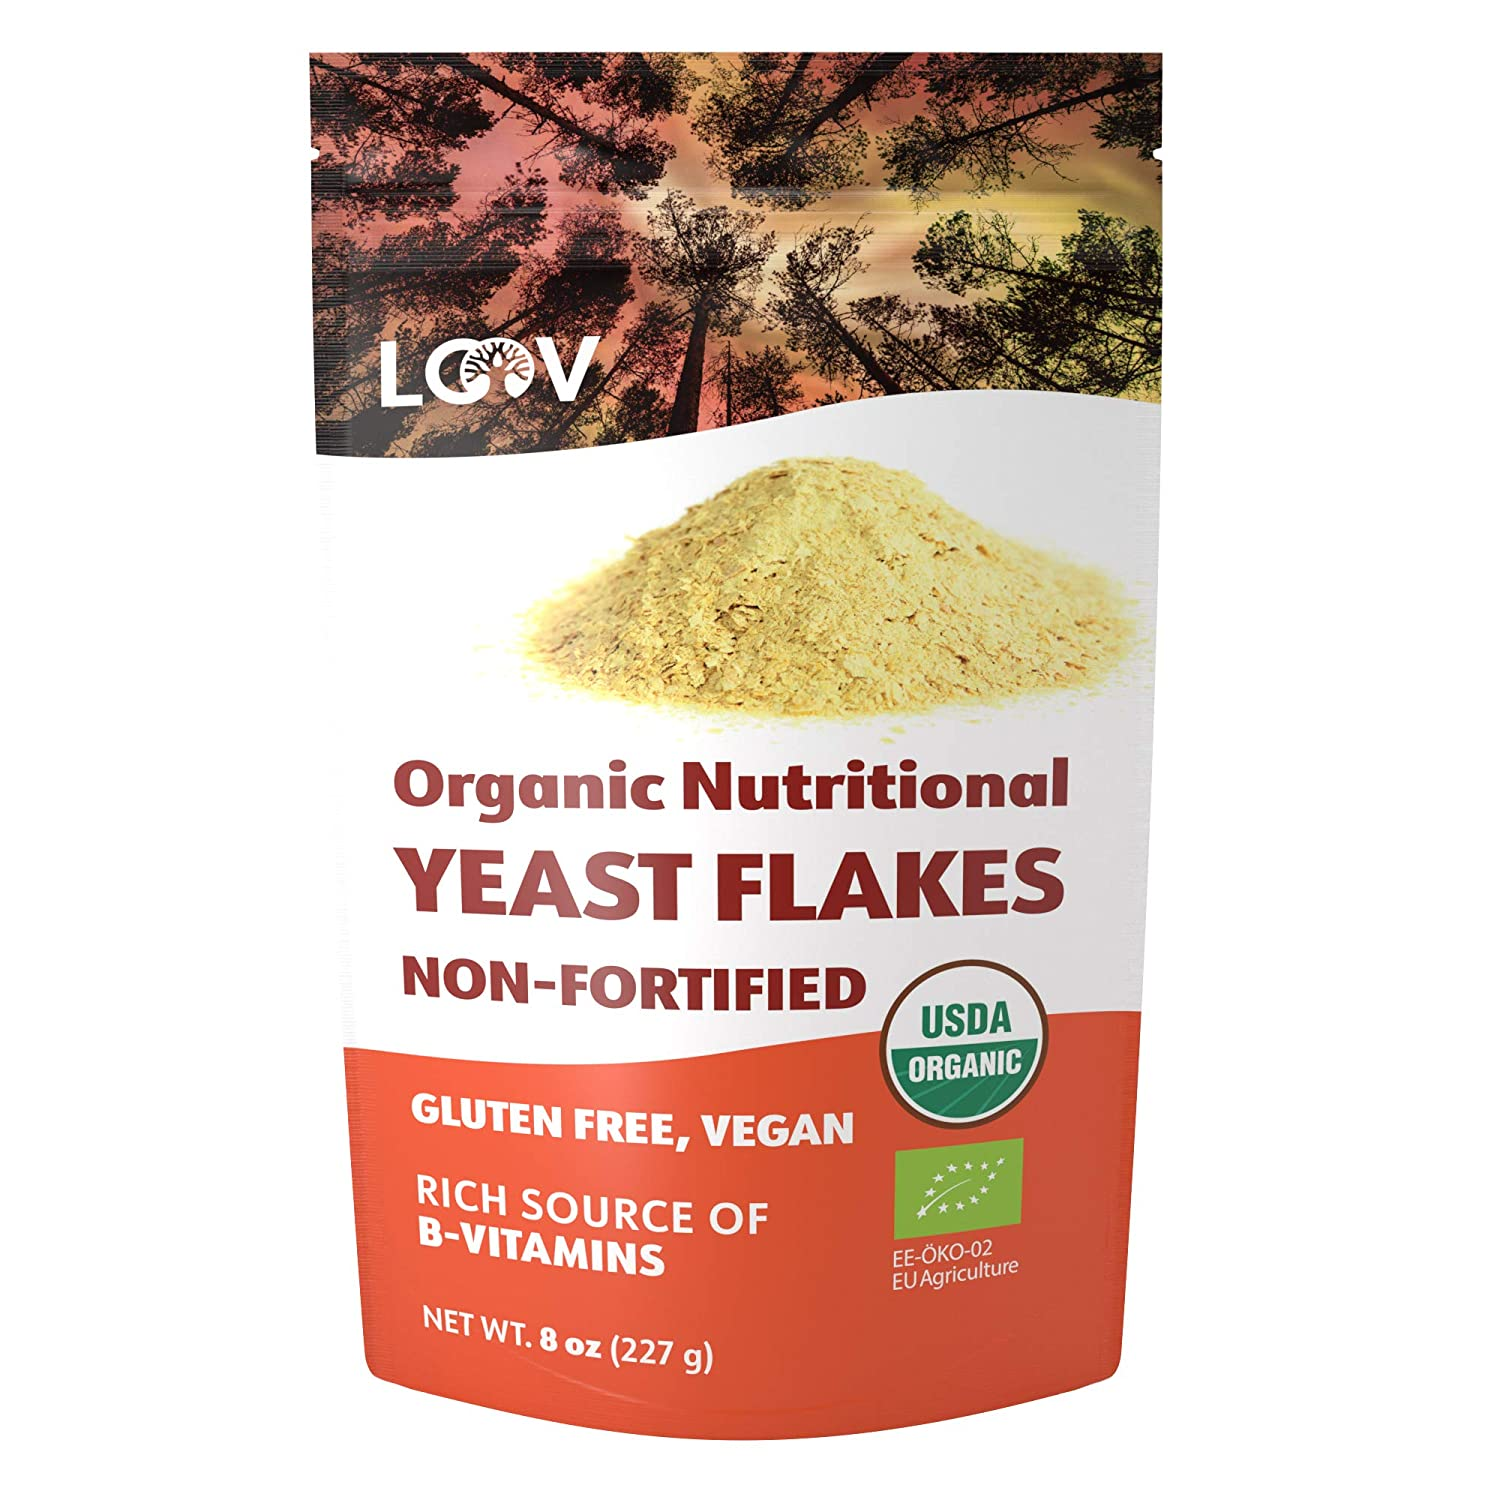 LOOV Organic non-Fortified Nutritional Yeast Flakes, Nooch, Toasted, Vegan, non-GMO, Gluten Free, Good Source of B-Vitamins, 8 Ounces, no Added Vitamins, no Added Sugar, Resealable Bag